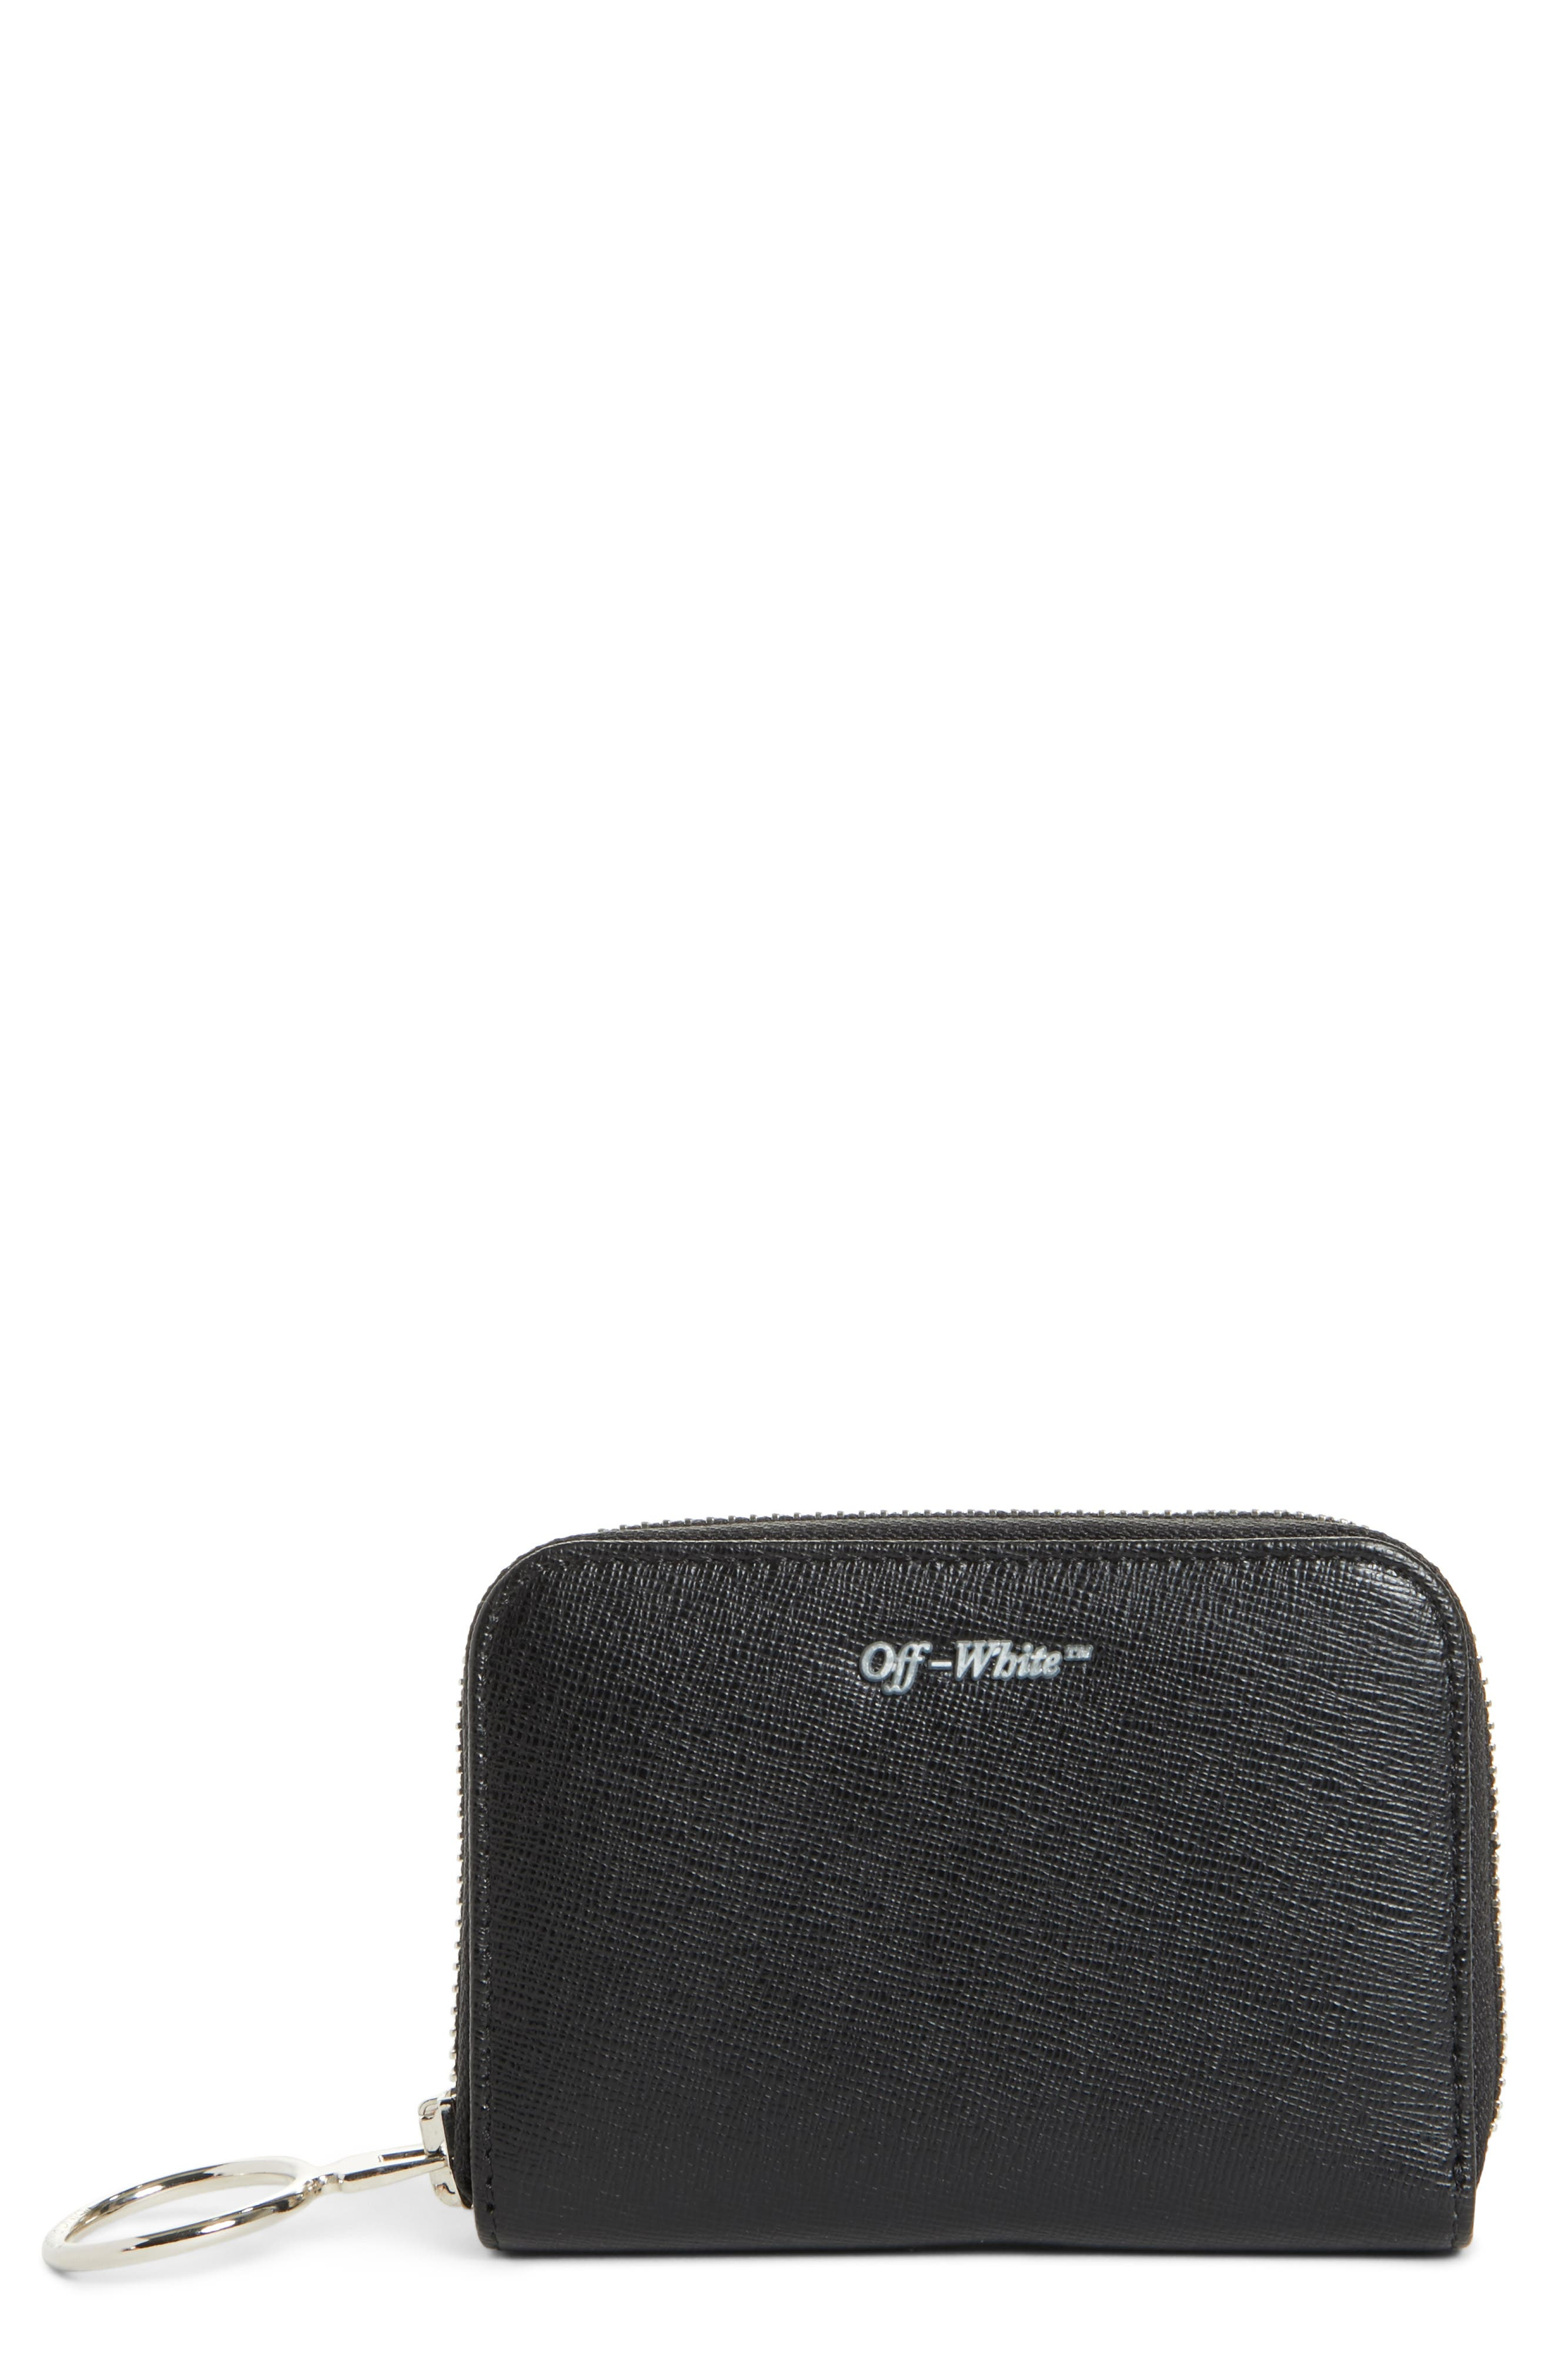 Off-White Medium Zip Wallet